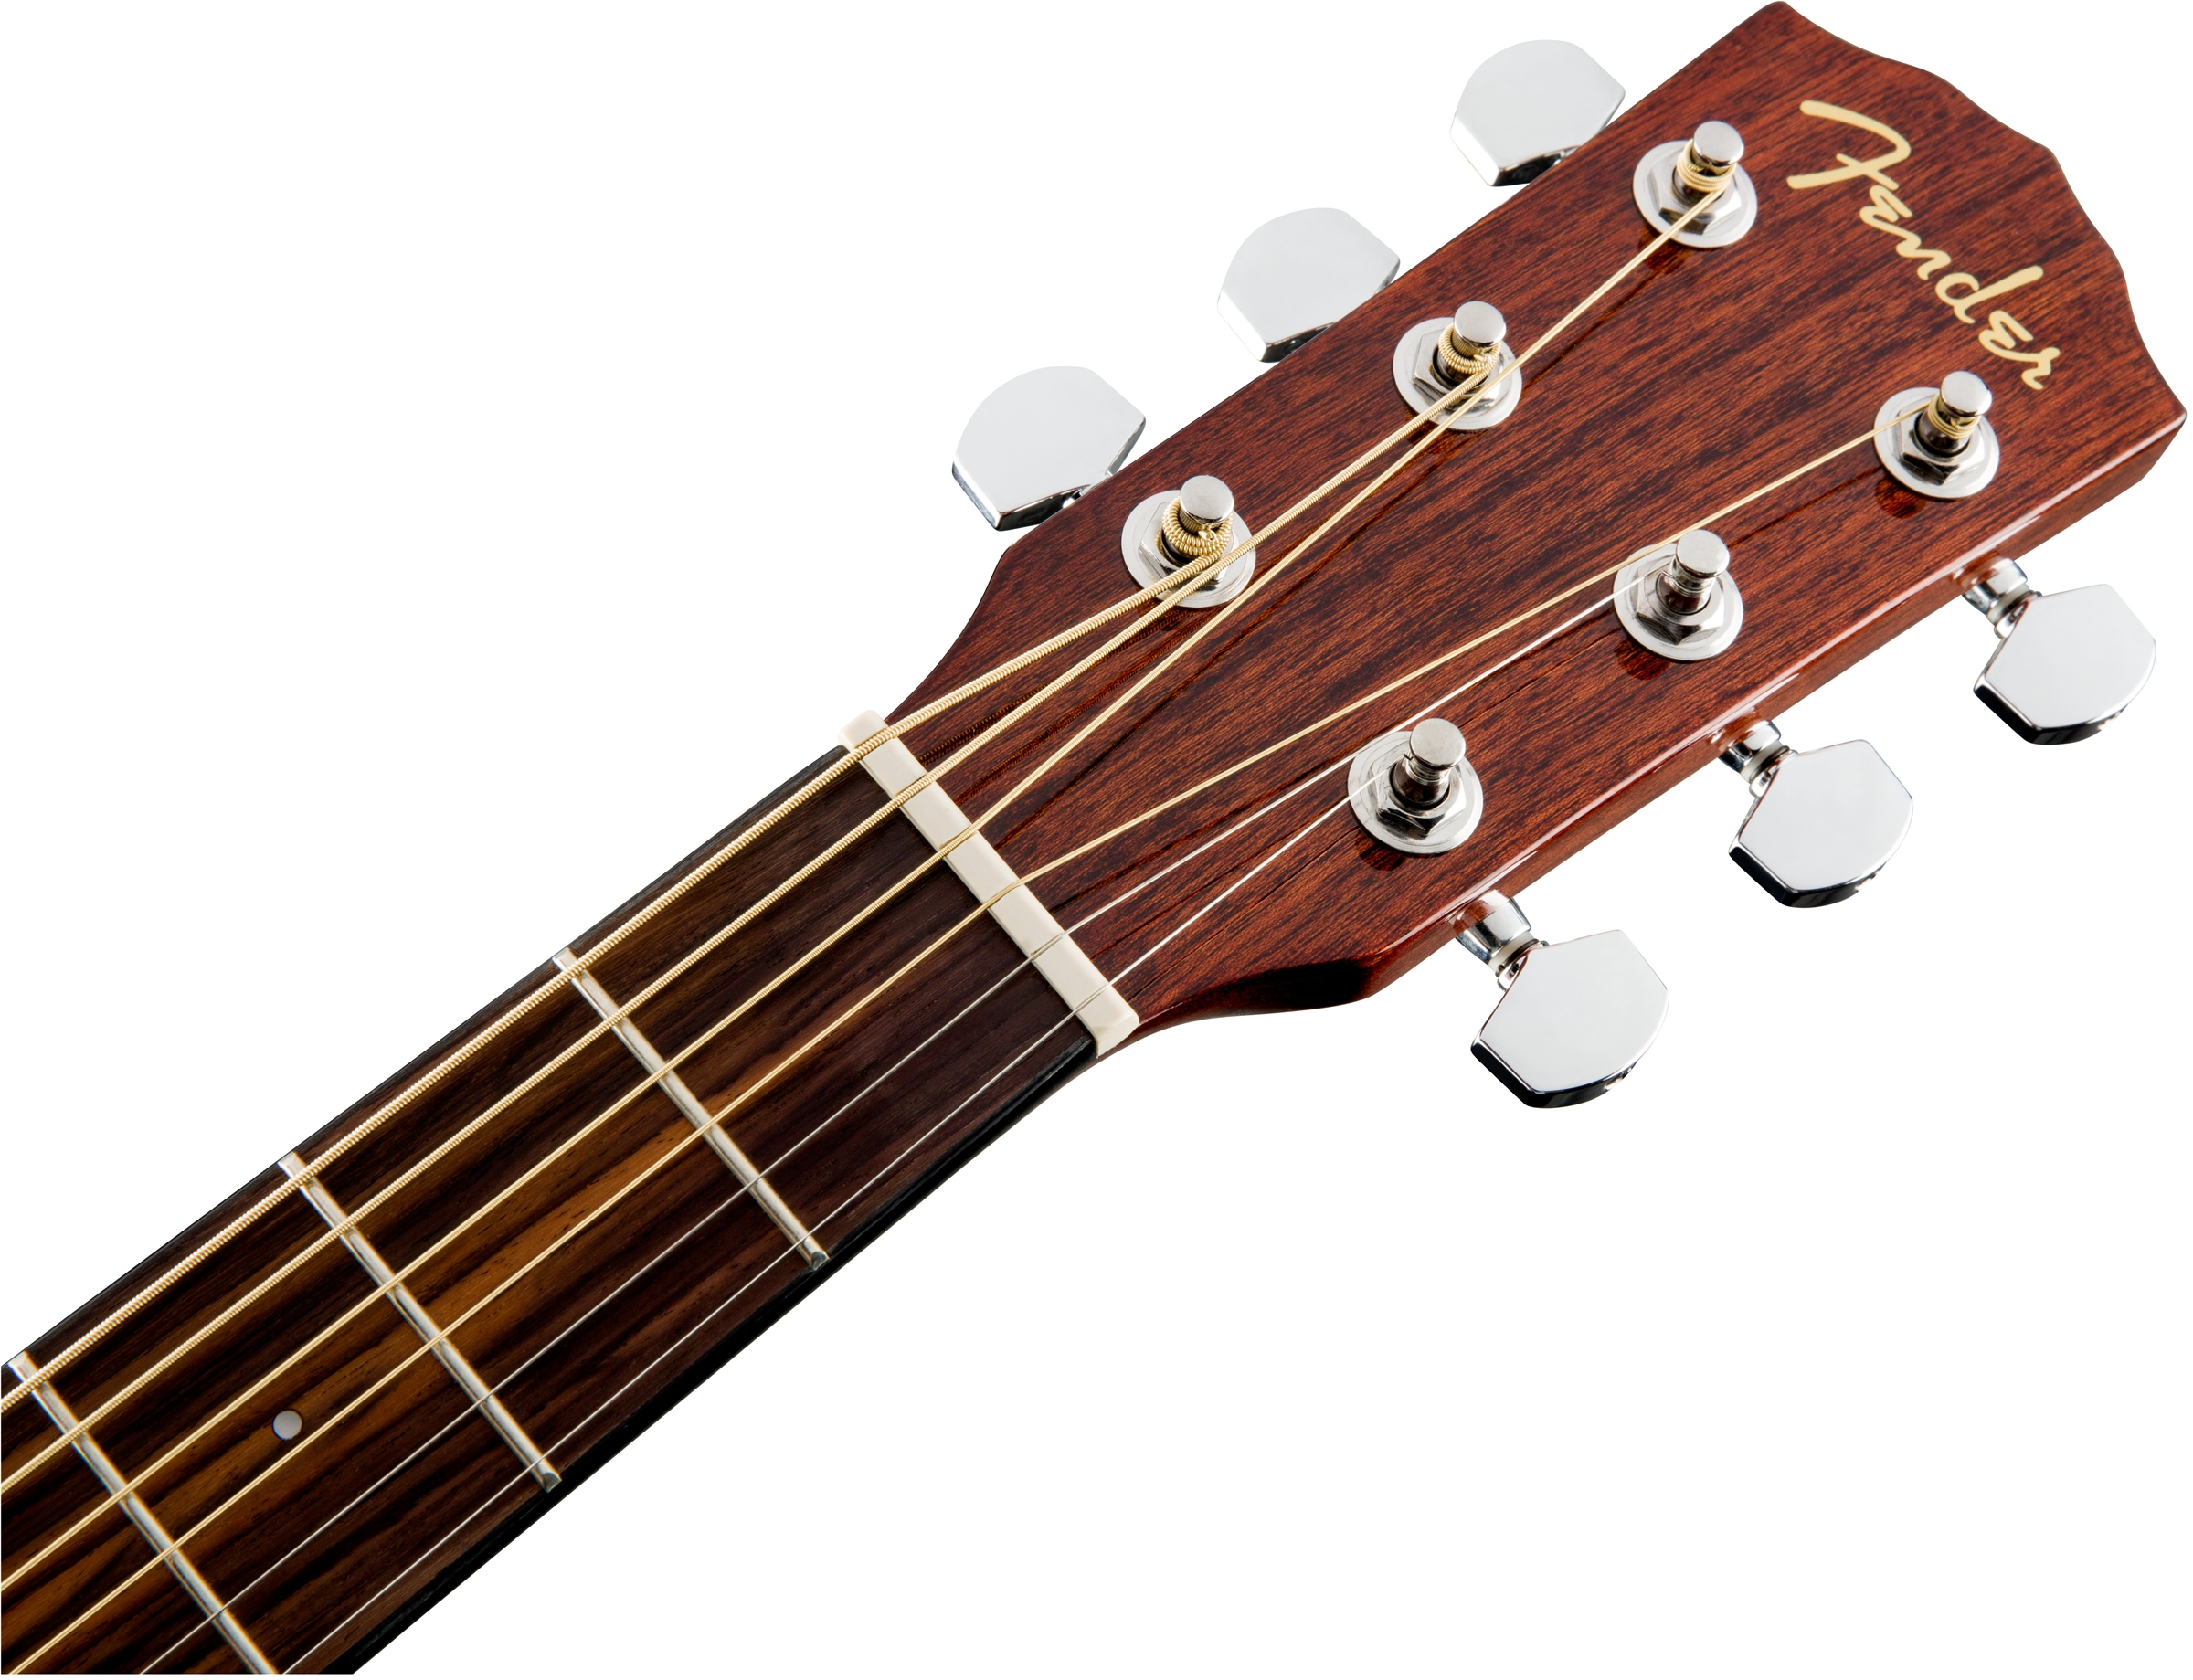 Fender acoustic serial number dating rifles